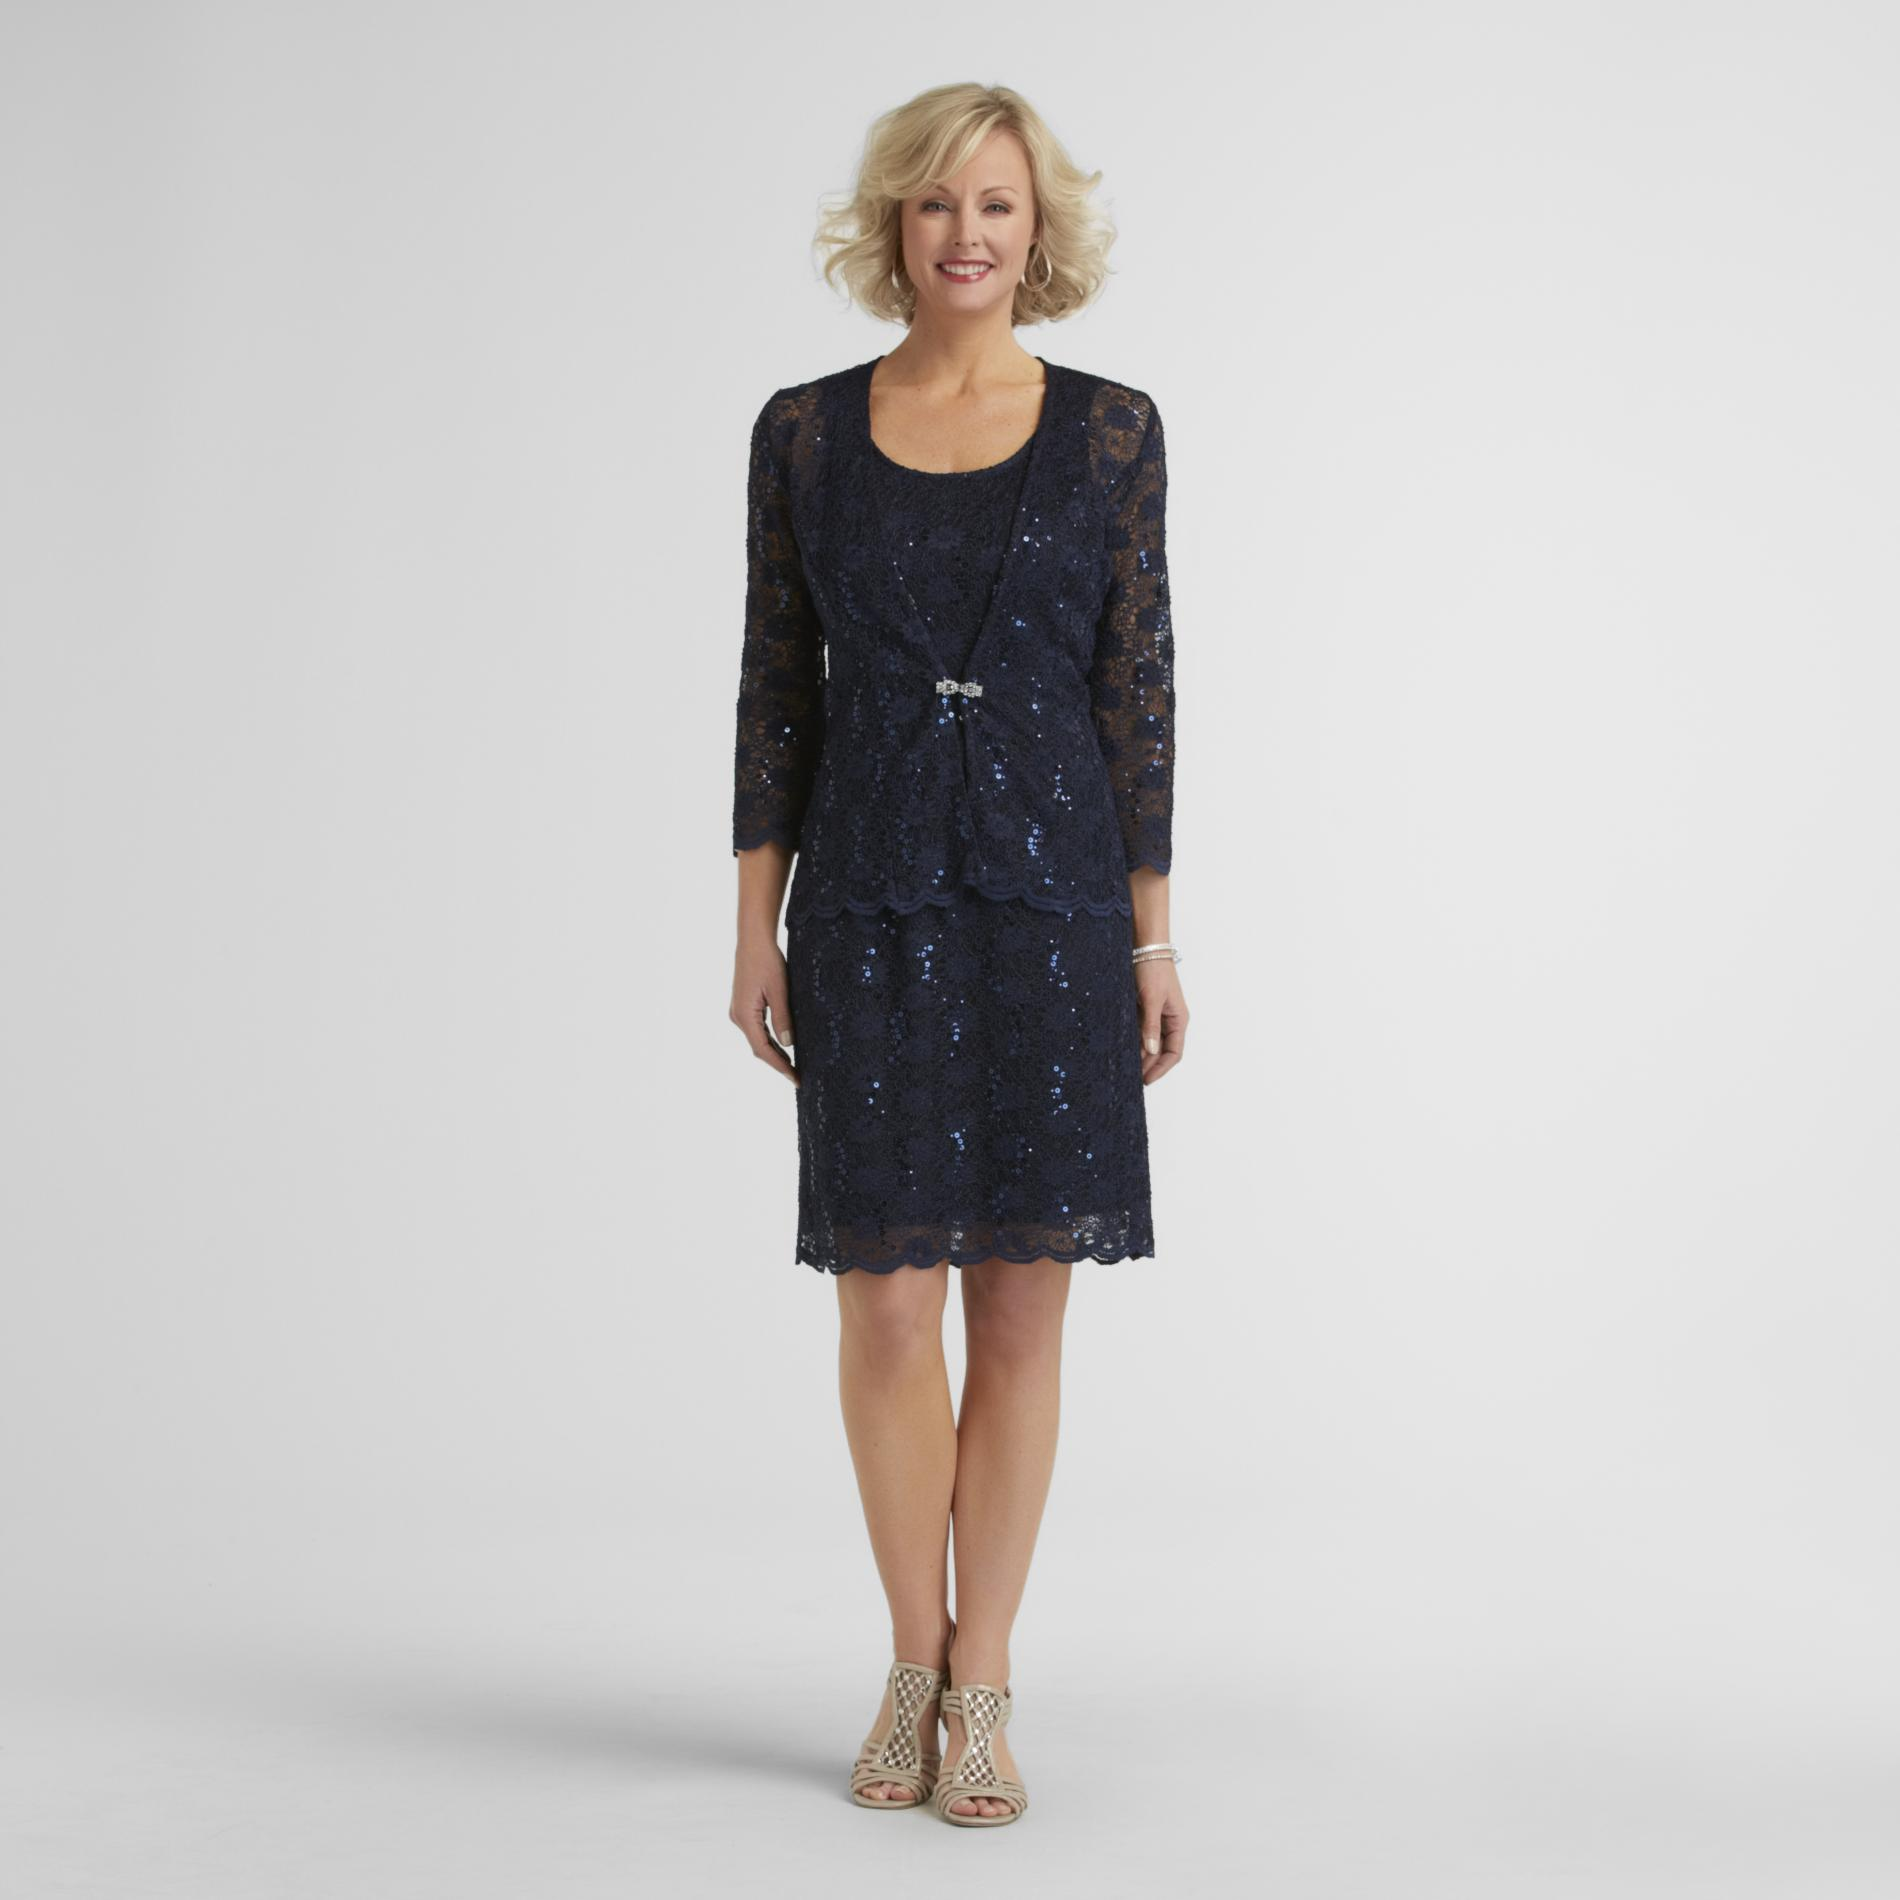 R & M Richards Women's Lace Dress & Jacket - Sequined at Sears.com